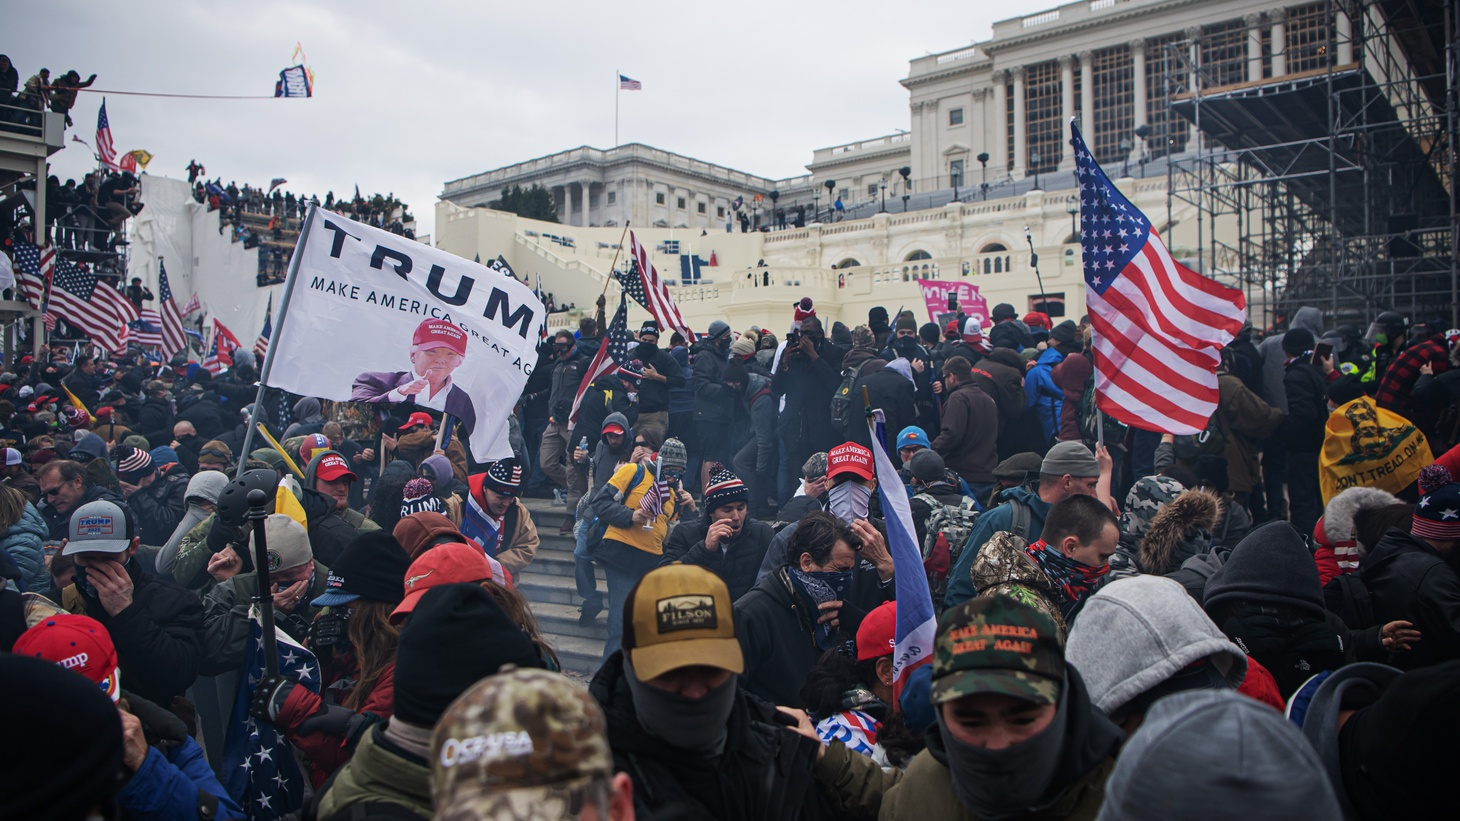 210106 People run away from tear gas as pro-Trump supporters storm the United States Capitol Building after a March to Save America Rally on January 6, 2021 in Washington, DC, USA.